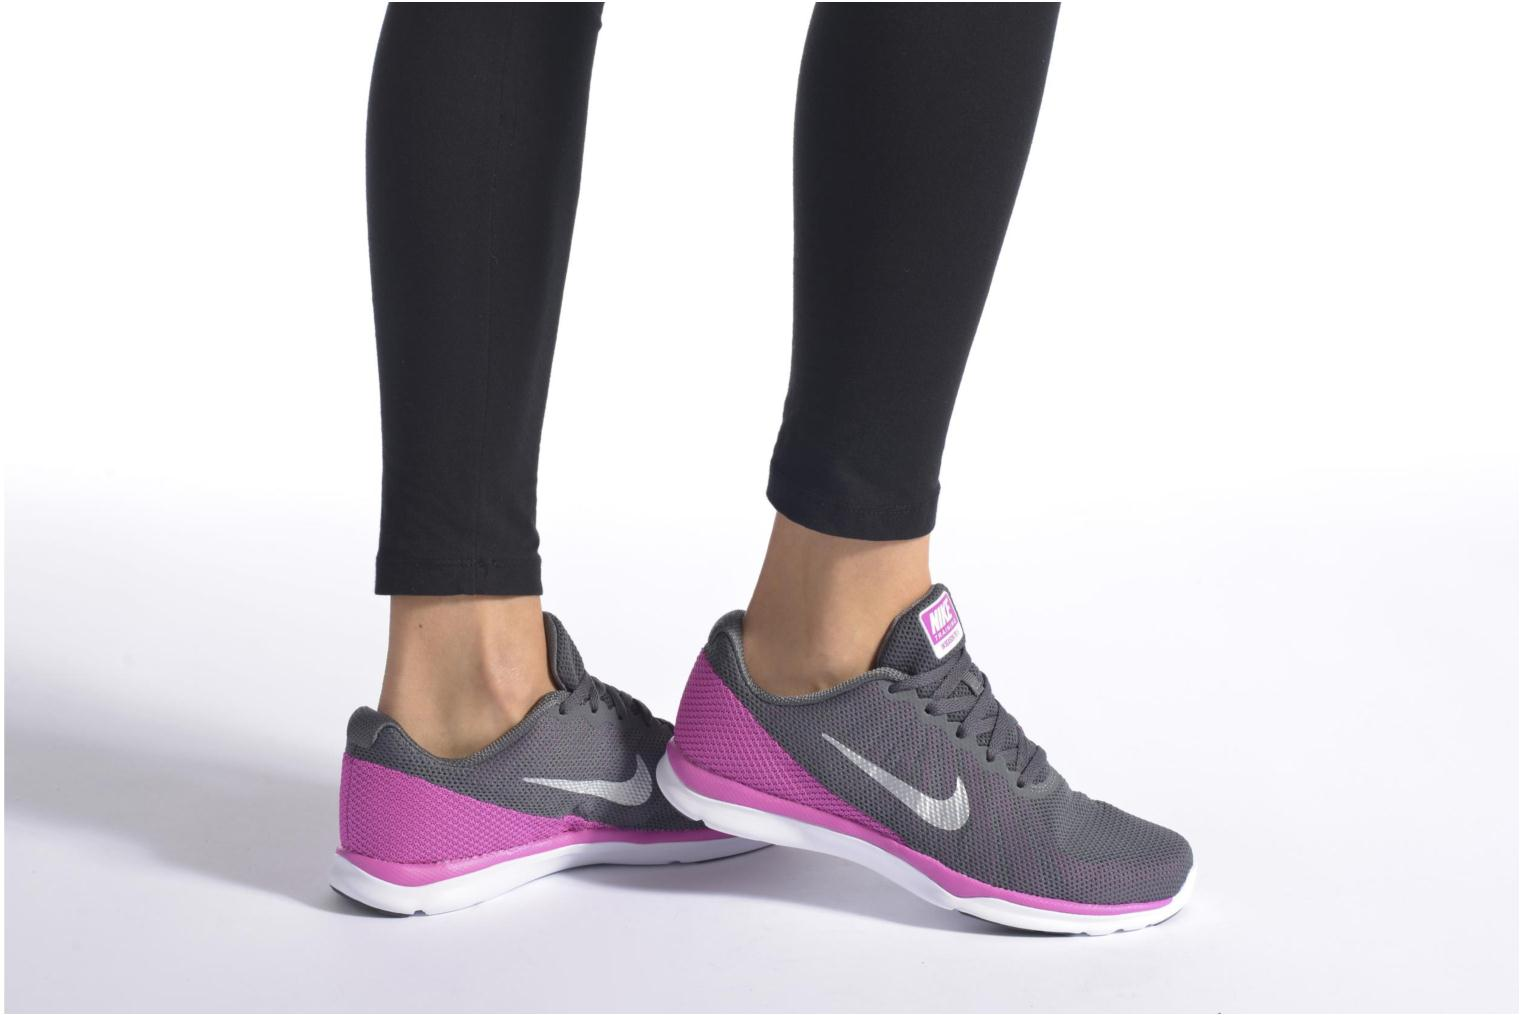 Wmns Nike In-Season Tr 6 Dark Grey/Mtlc Platinum-Fire Pink